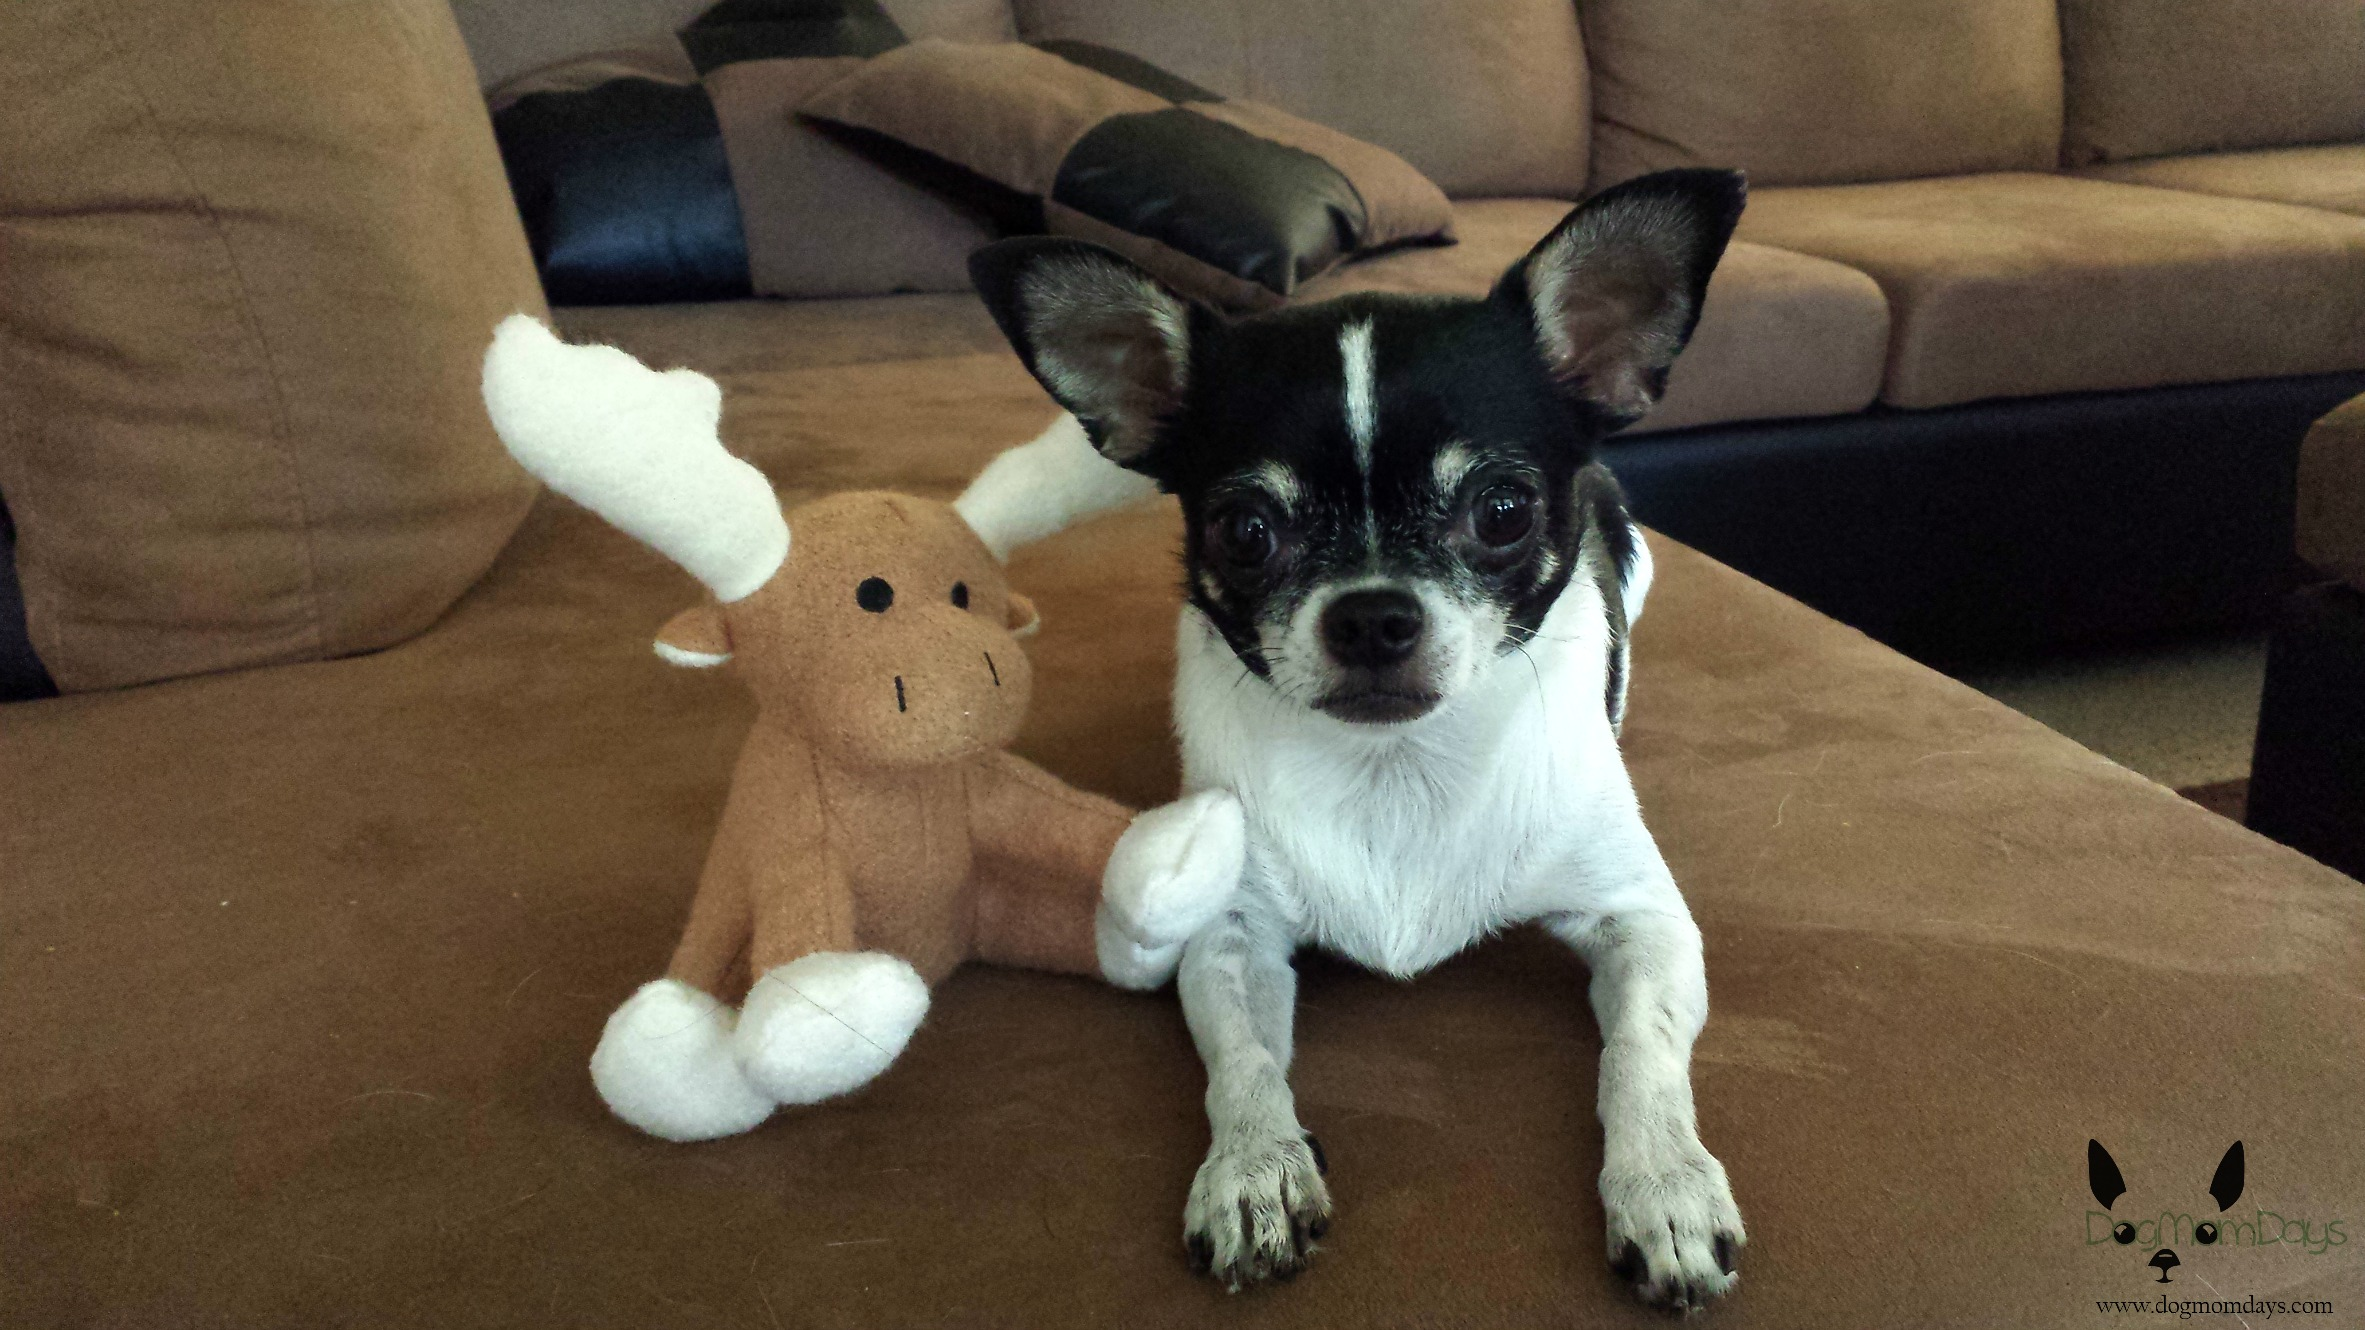 Wynston and his moose.